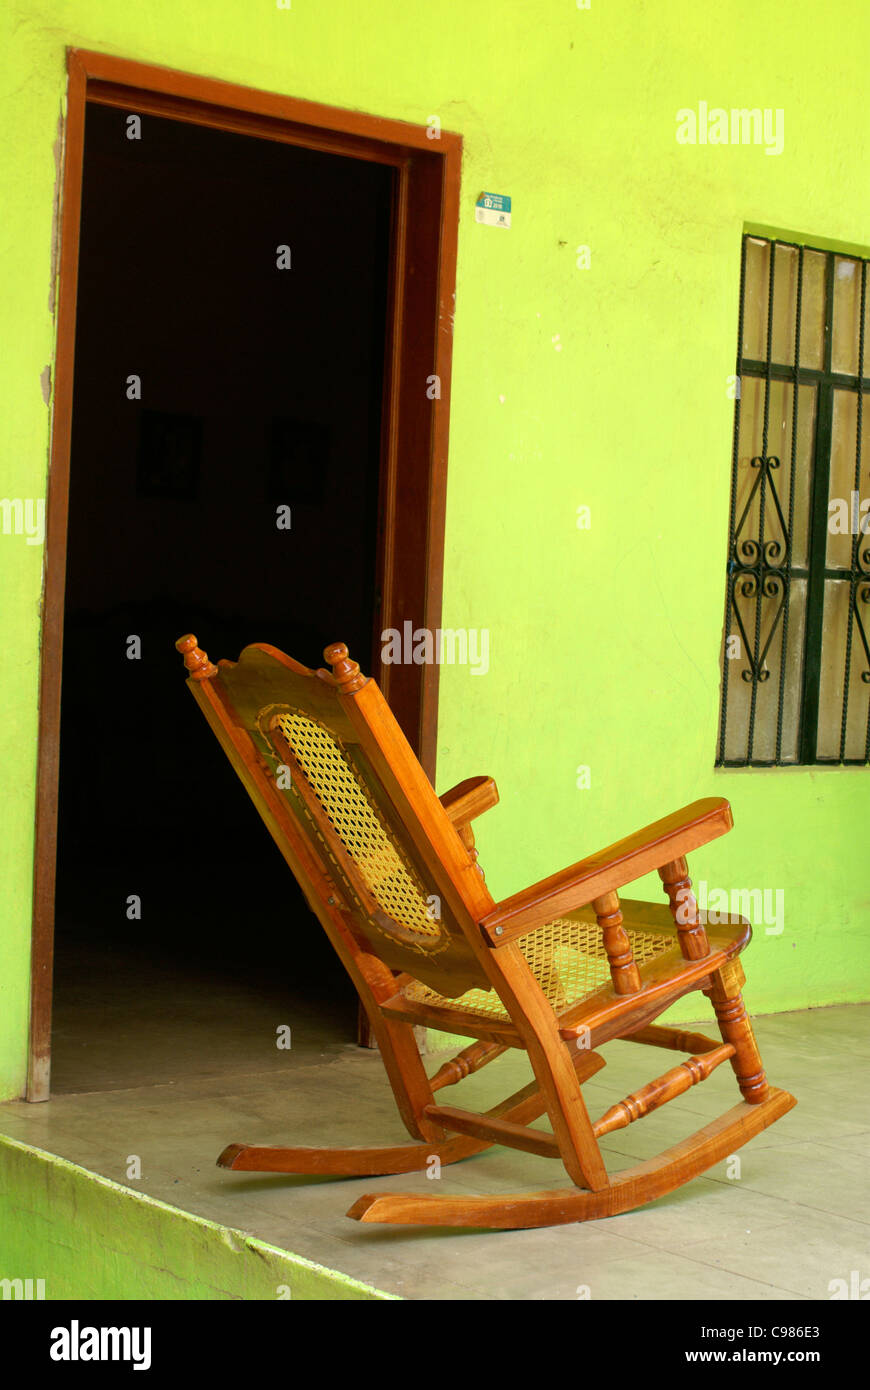 rocking-chair-on-the-porch-of-a-house-in-the-town-of-el-quelite-near-C986E3.jpg